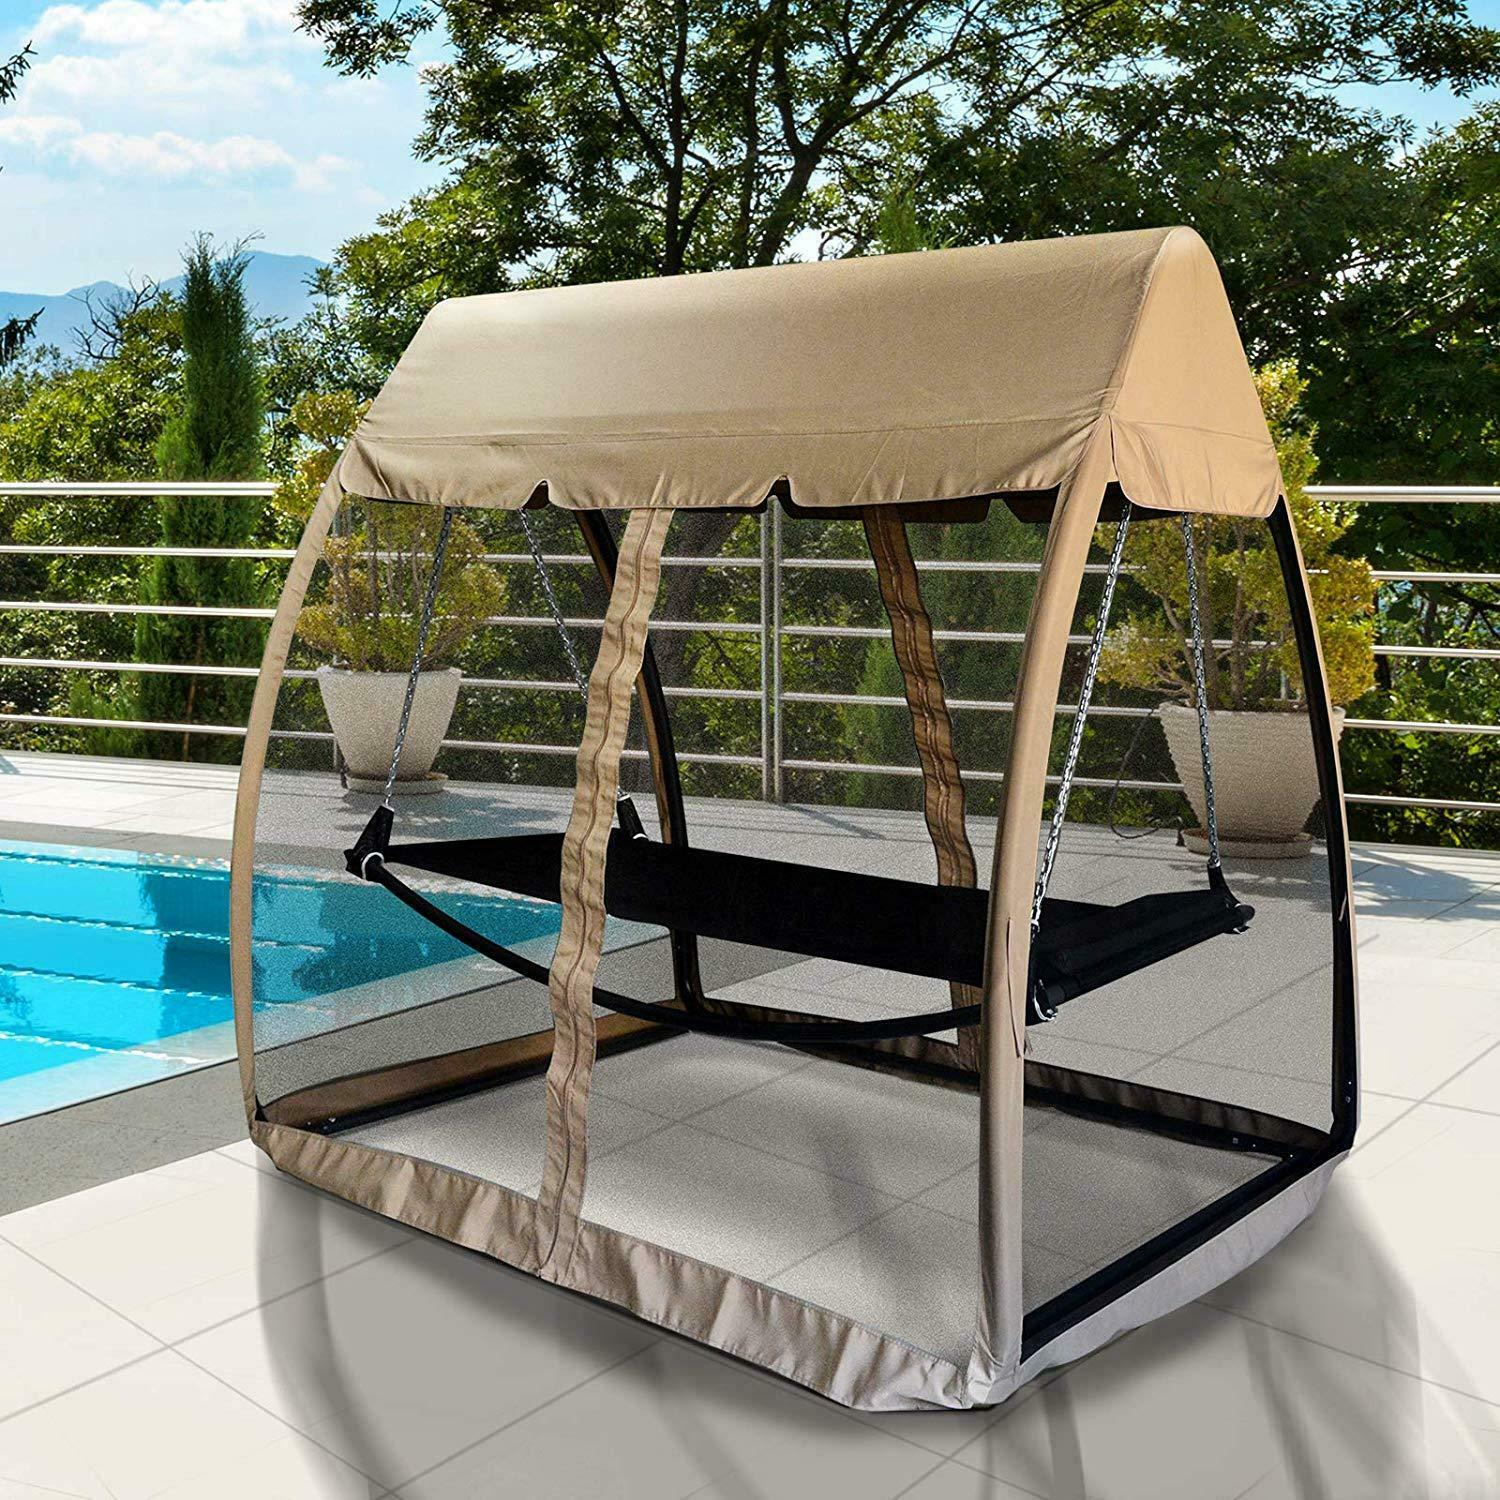 Details About 3 Seat Garden Swing Chair 2in1 Outdoor Rocking Bench Daybed Hammock Cover Beige